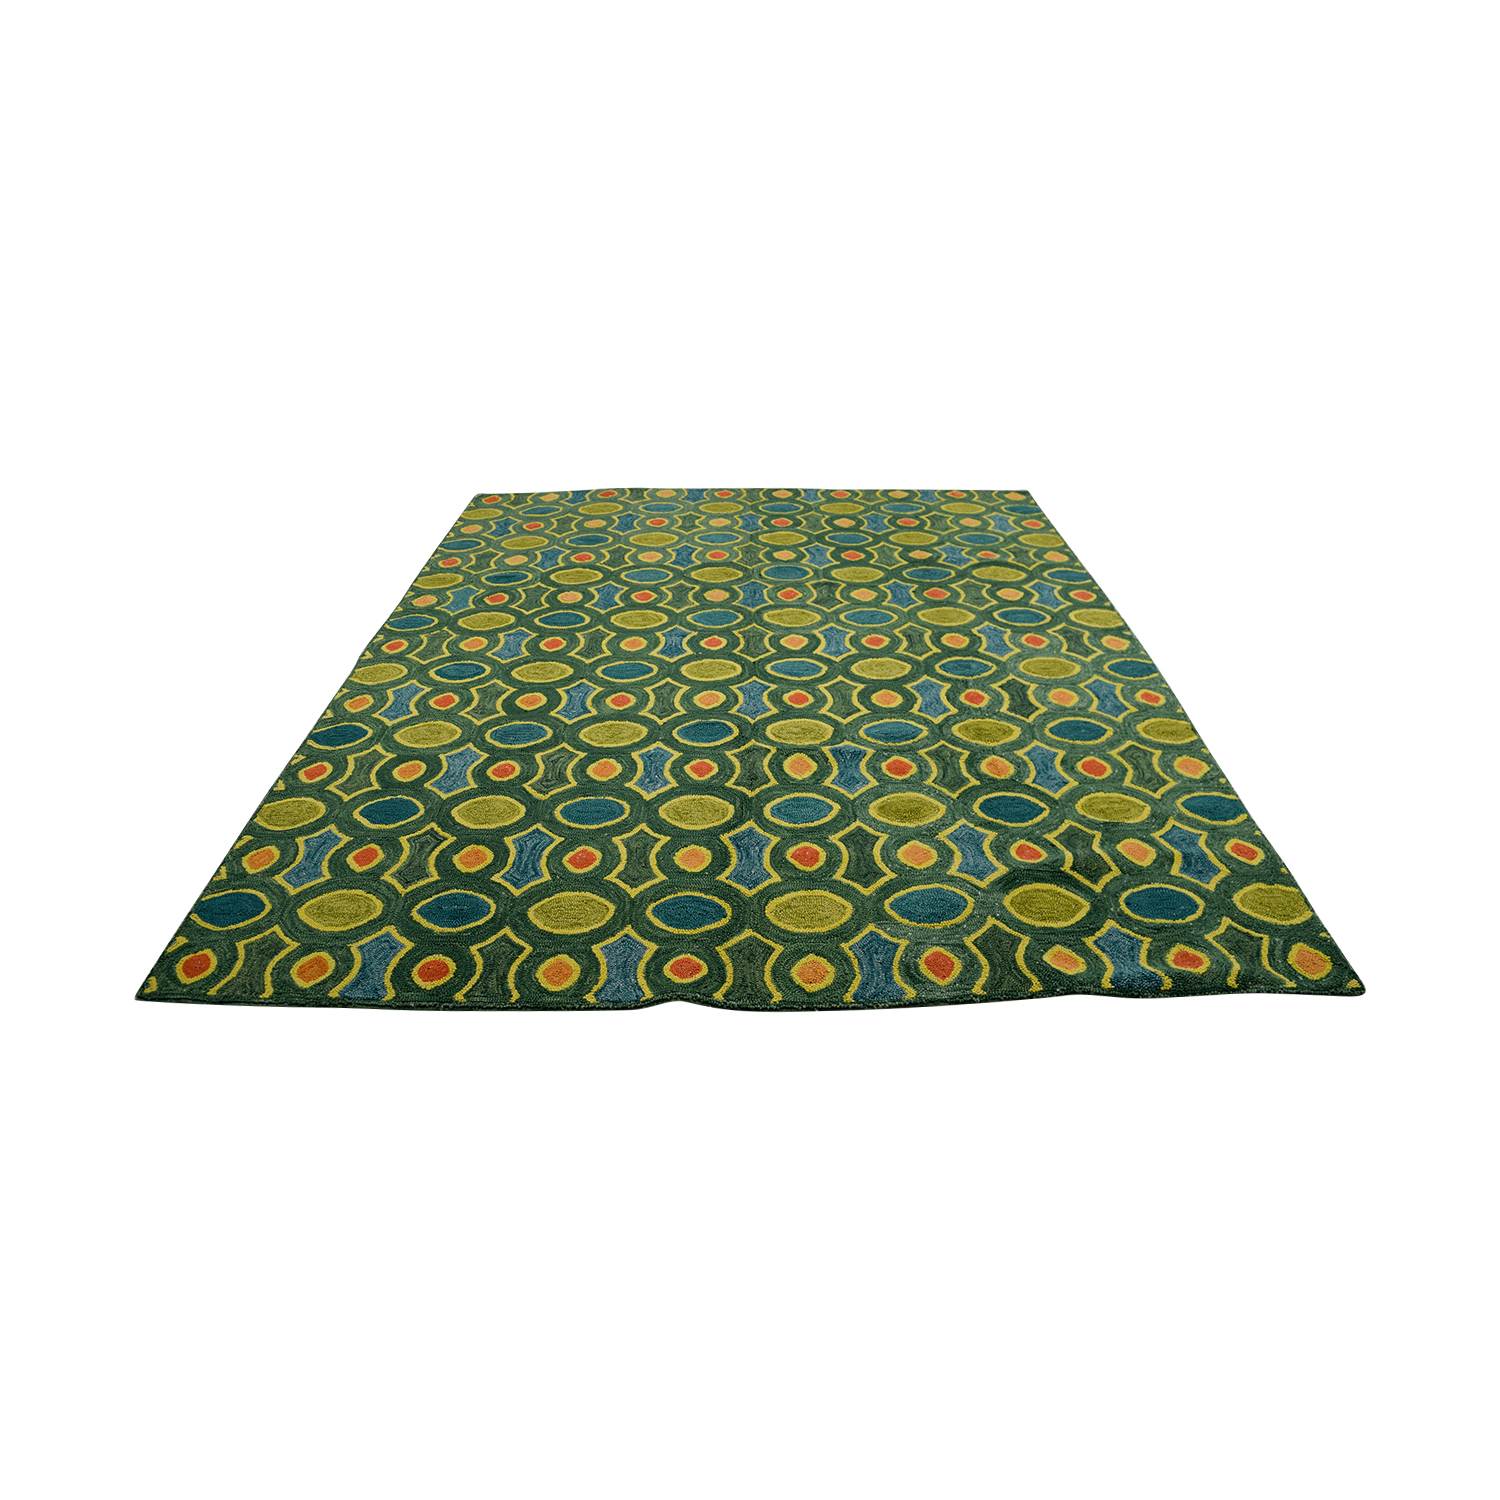 Obeetee Hand Hooked Green Orange Blue Rug / Rugs